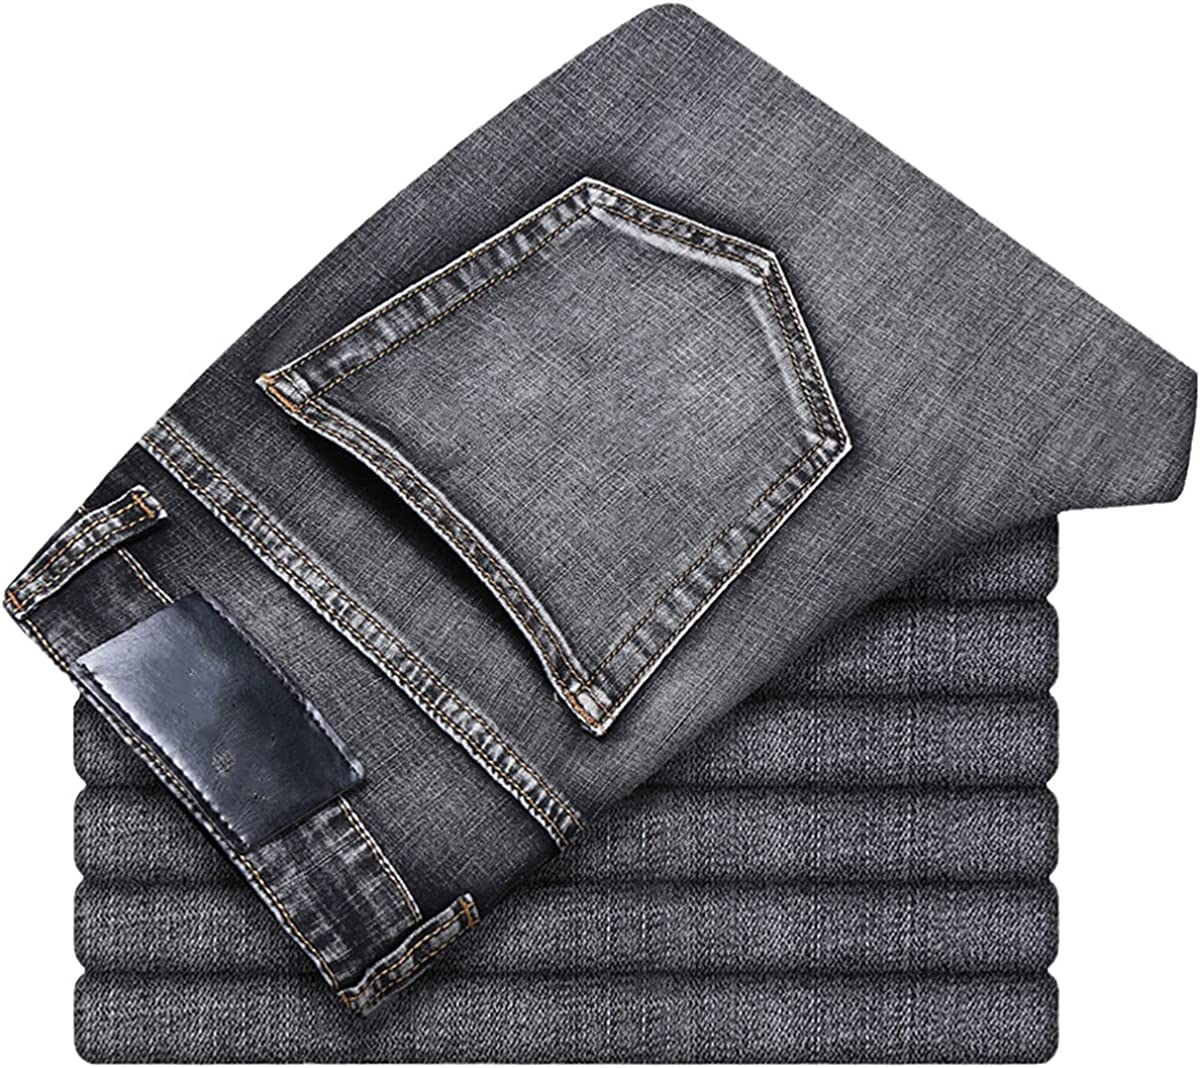 Men's Jeans Classic Style Business Casual high-Level Stretch Regular-fit Denim Trousers Blue Pants